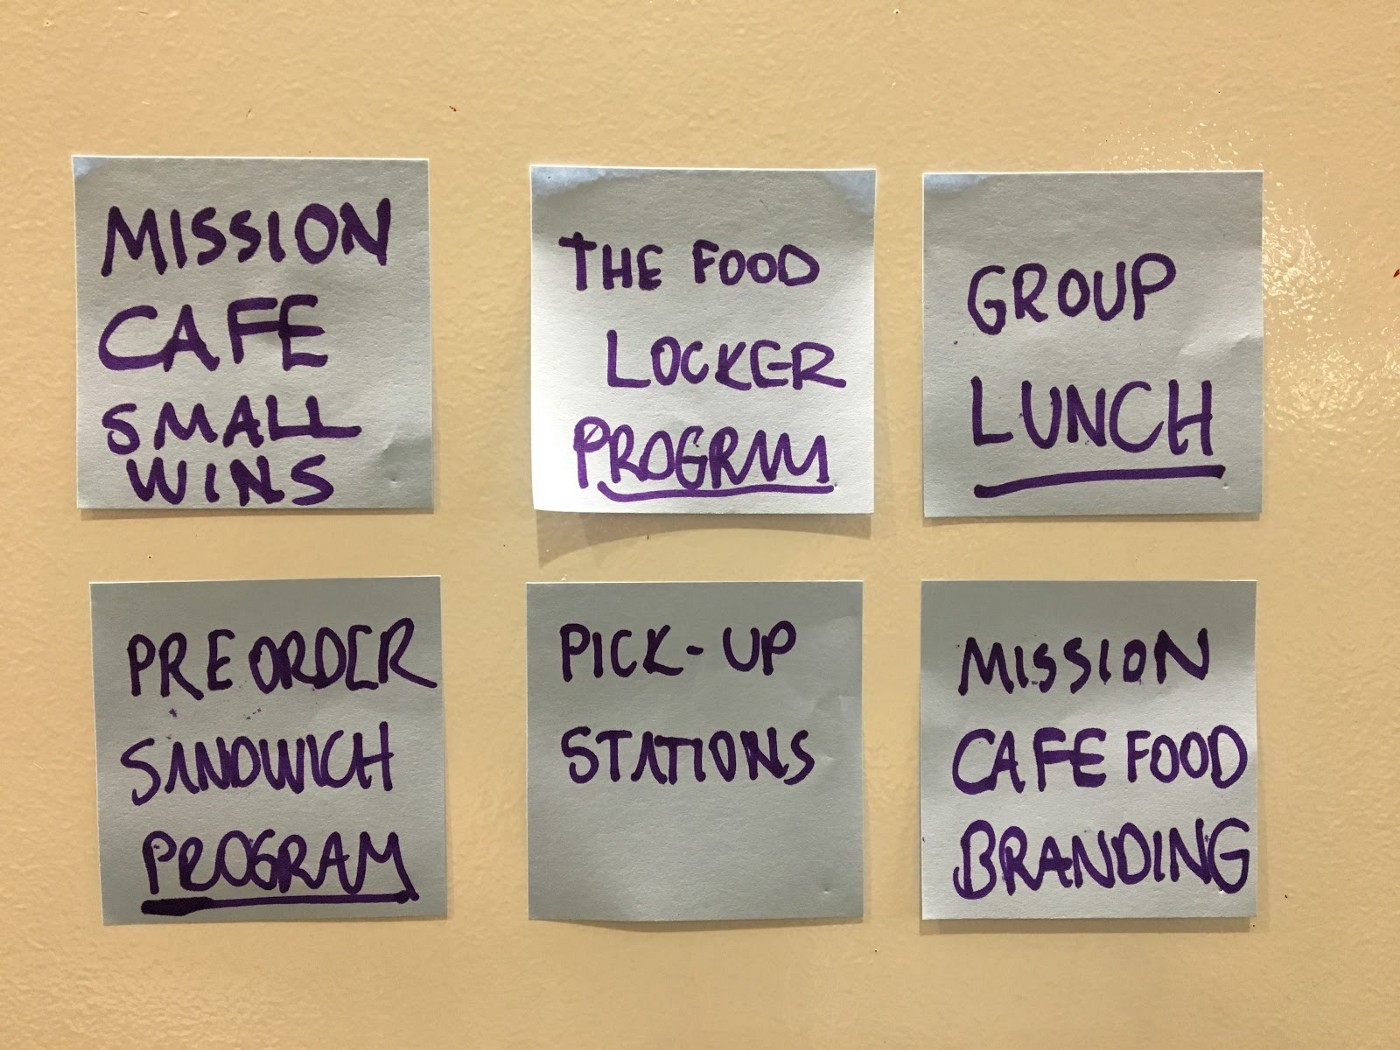 10 Insights into Designing Access to Food in San Francisco Schools